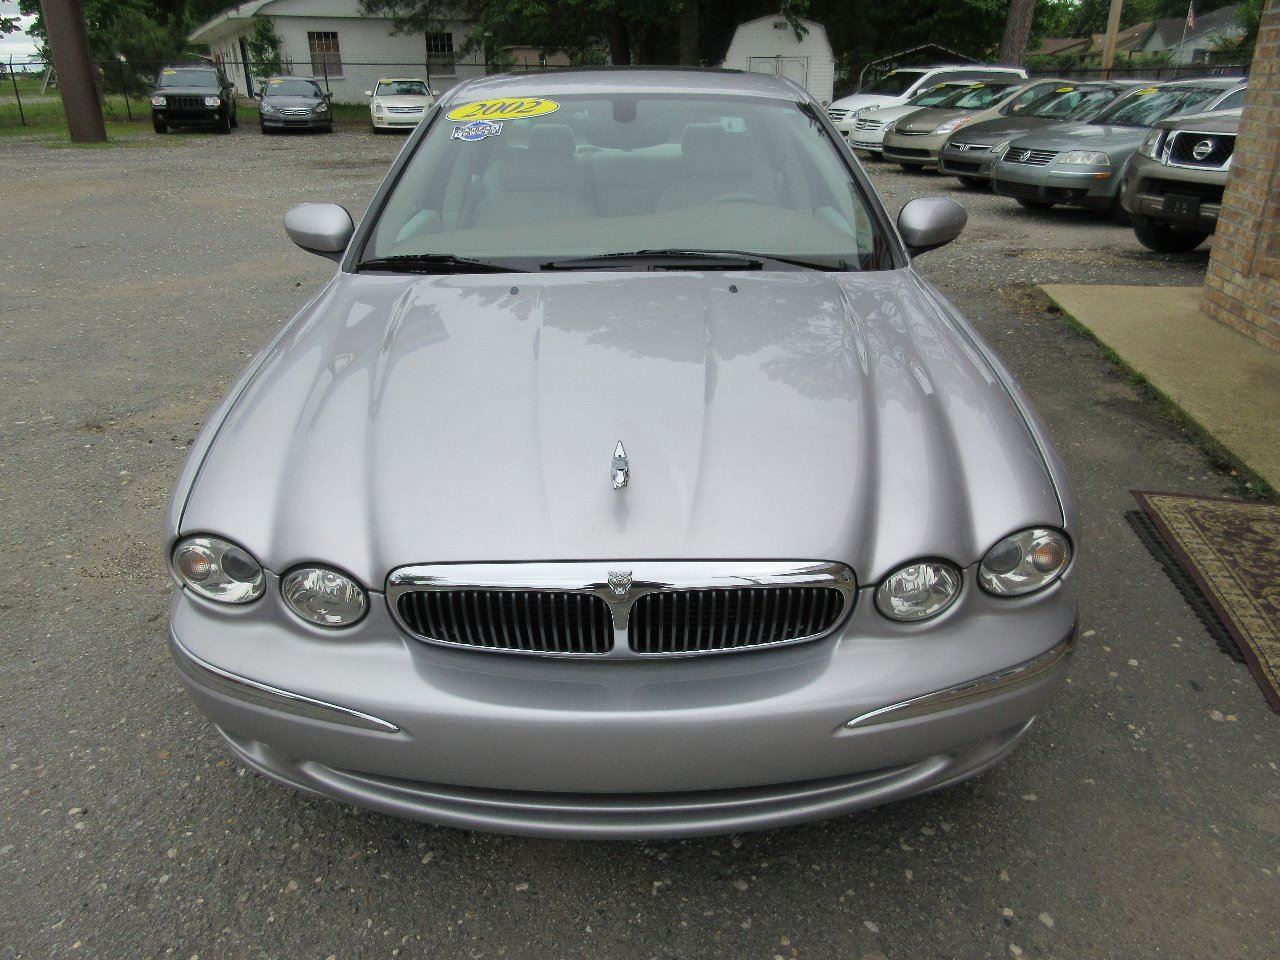 2002 Jaguar X Type AWD 2.5 4dr Sedan   Little Rock AR